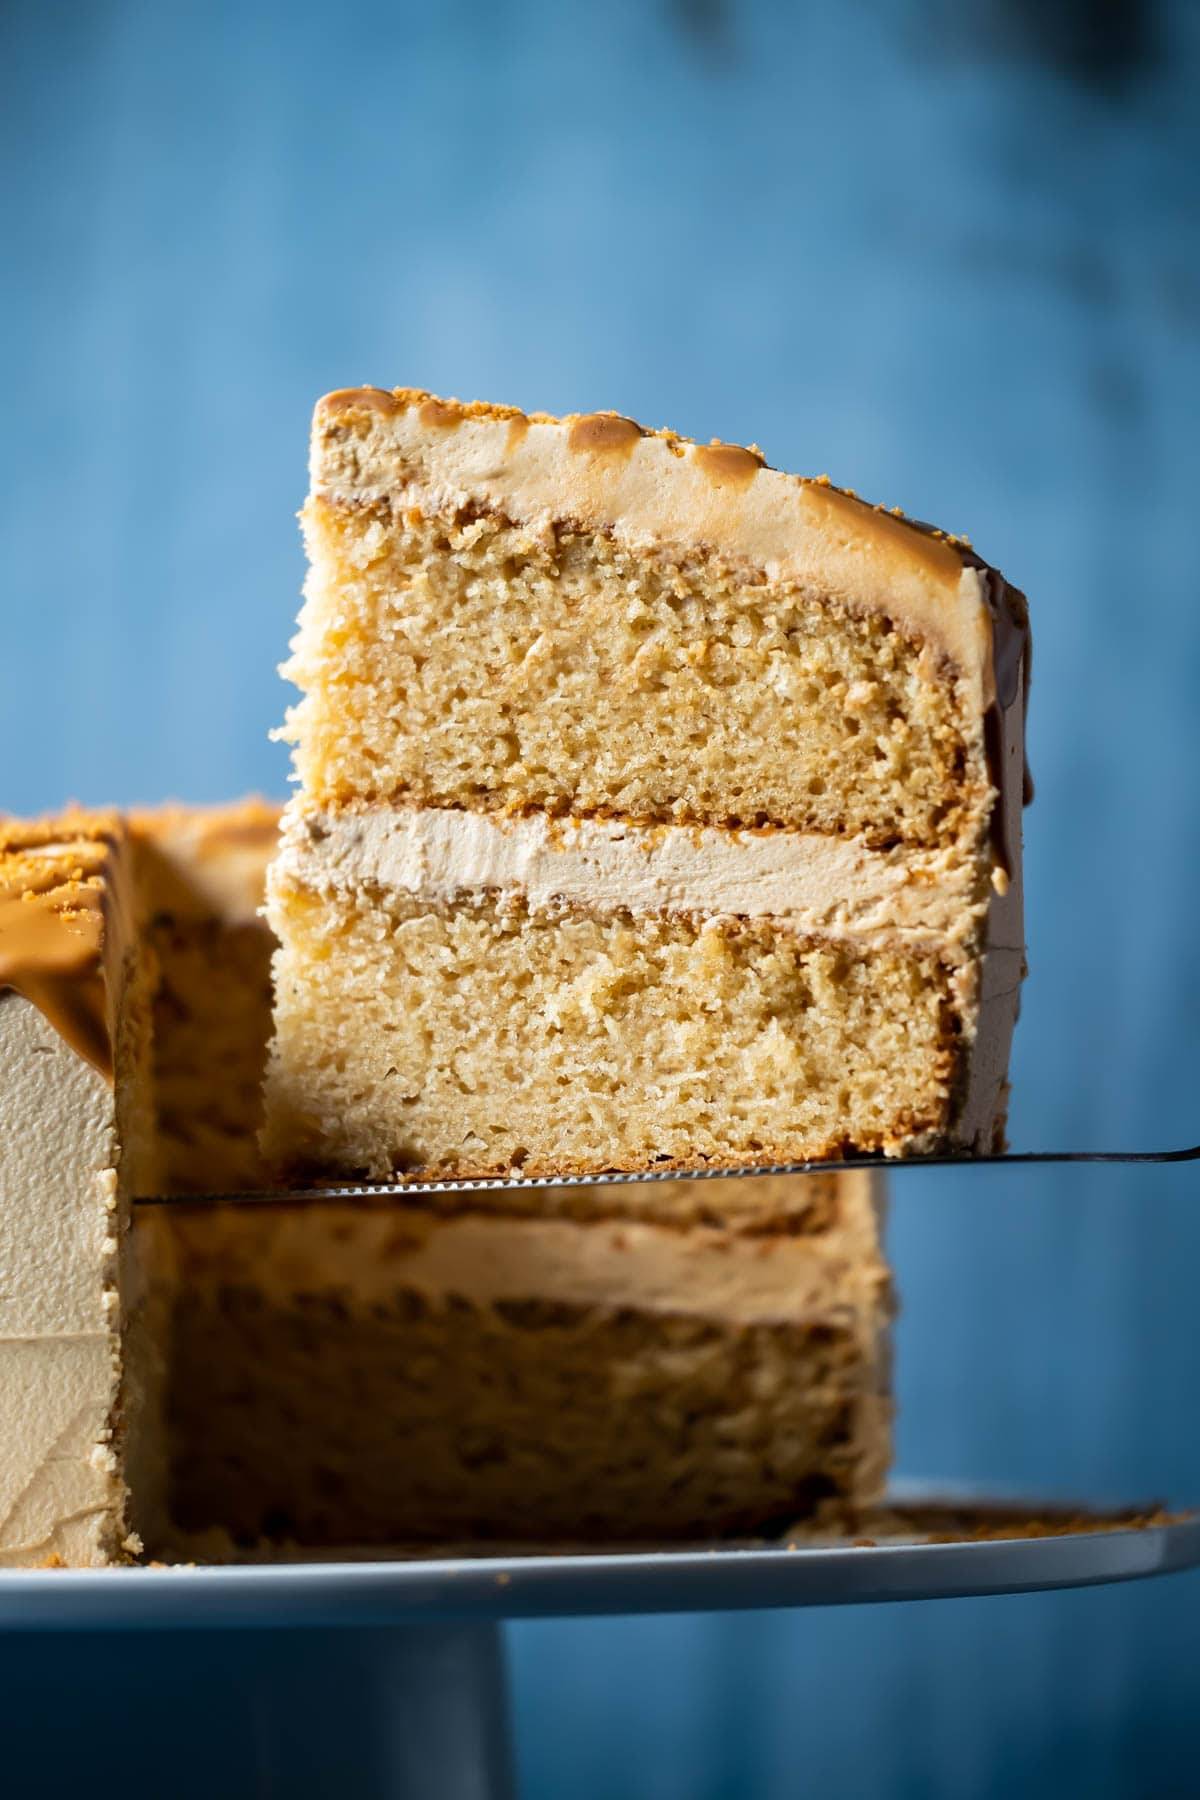 Slice of biscoff cake on a cake lifter.